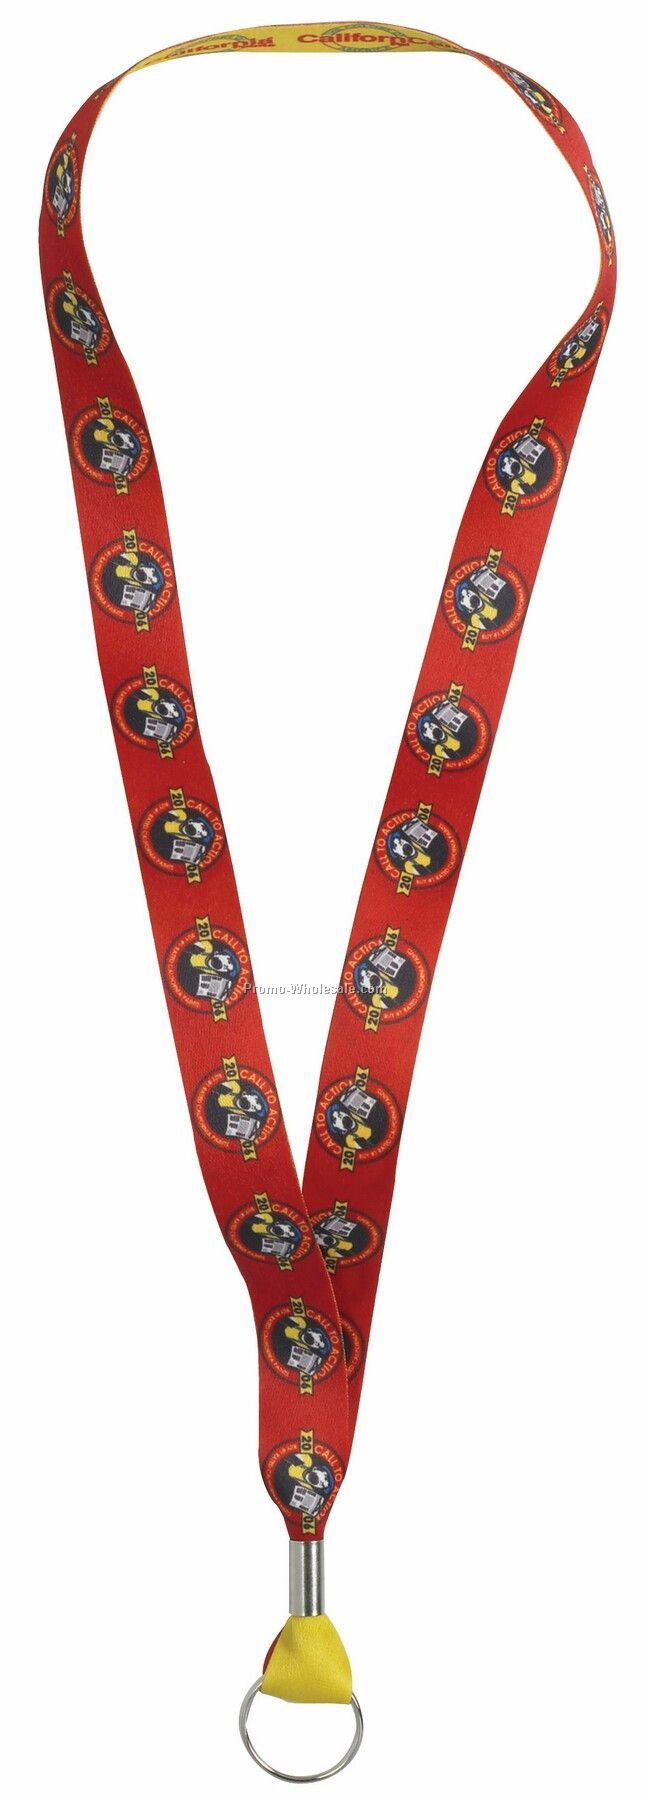 "3/4"" Heavy Weight Satin Lanyards"